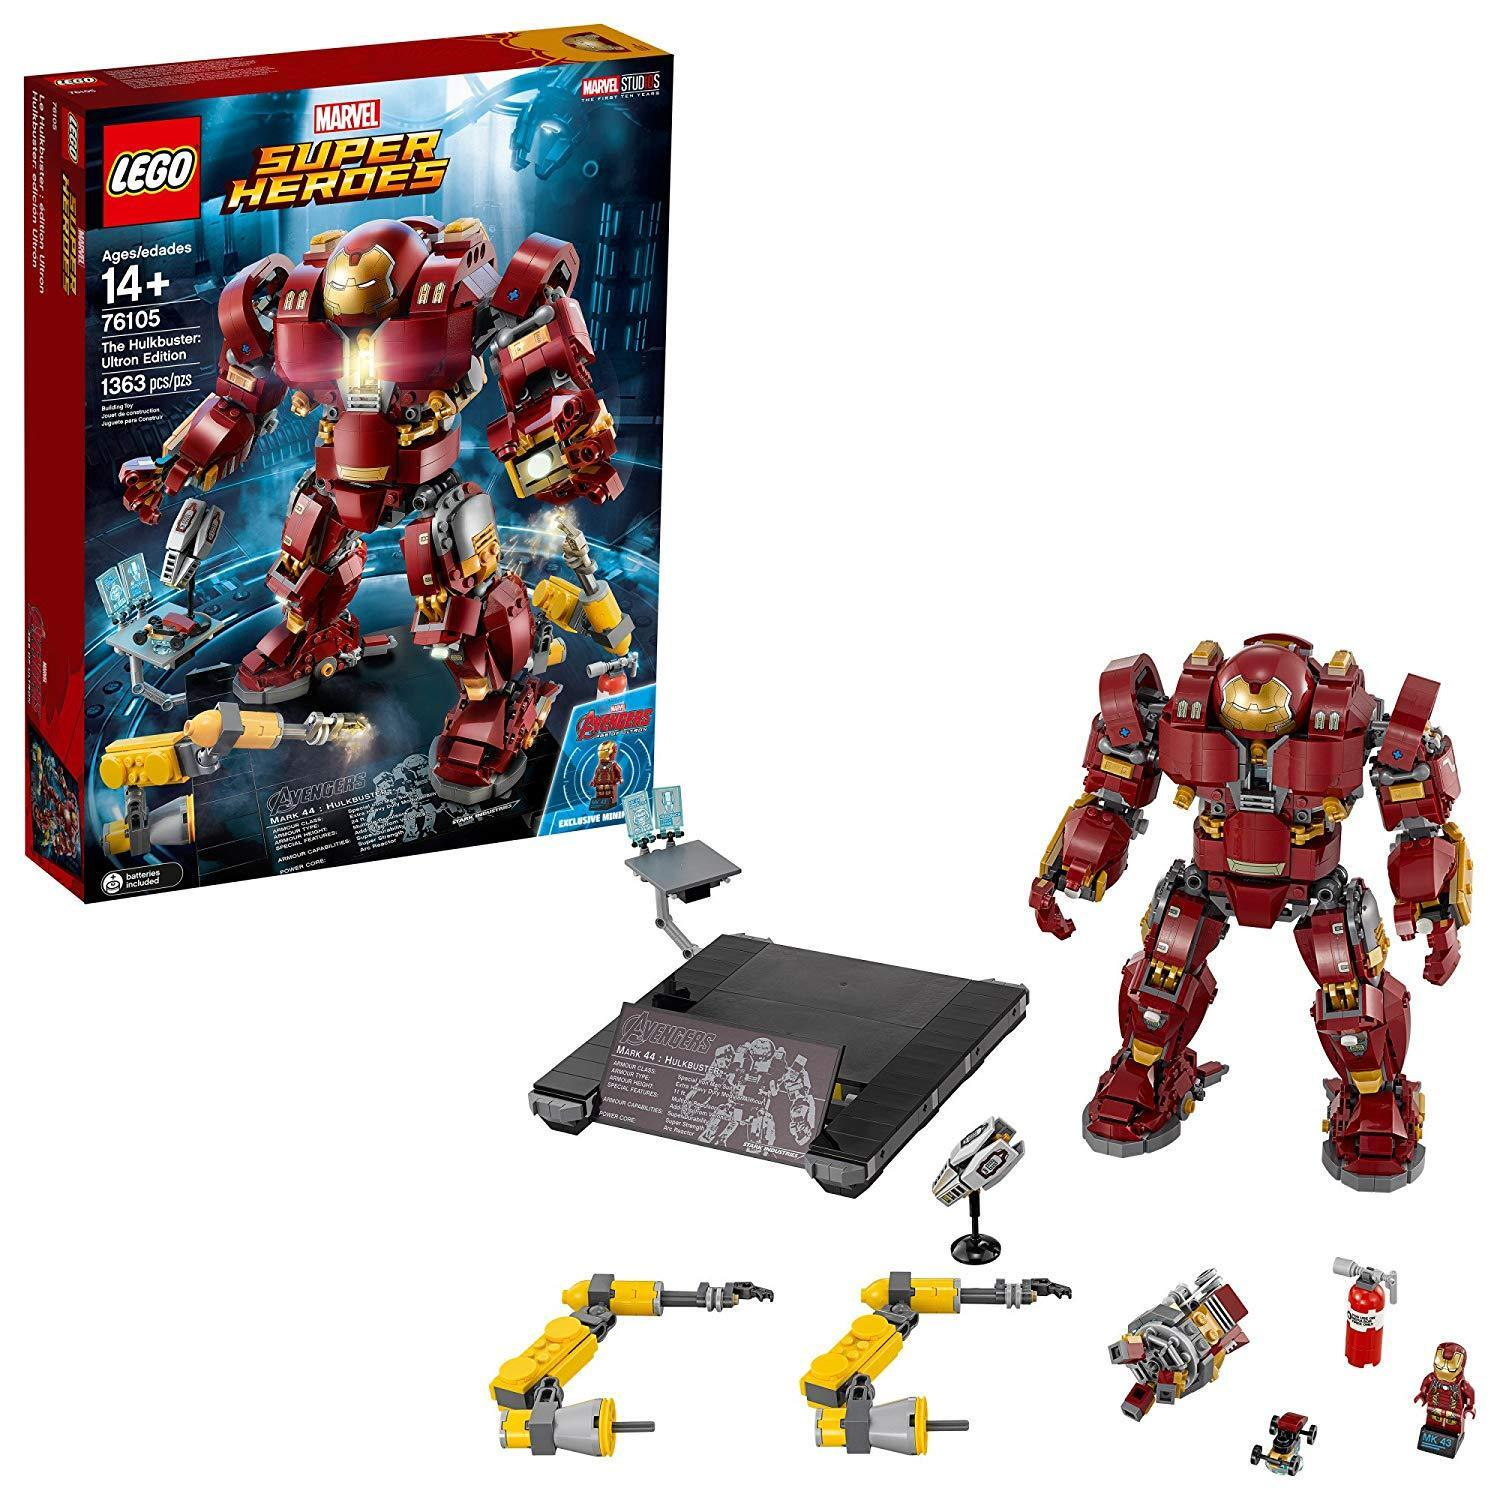 LEGO Super Heroes The Hulkbuster: Ultron Ed. 76105 Building Kit (1363 Piece)